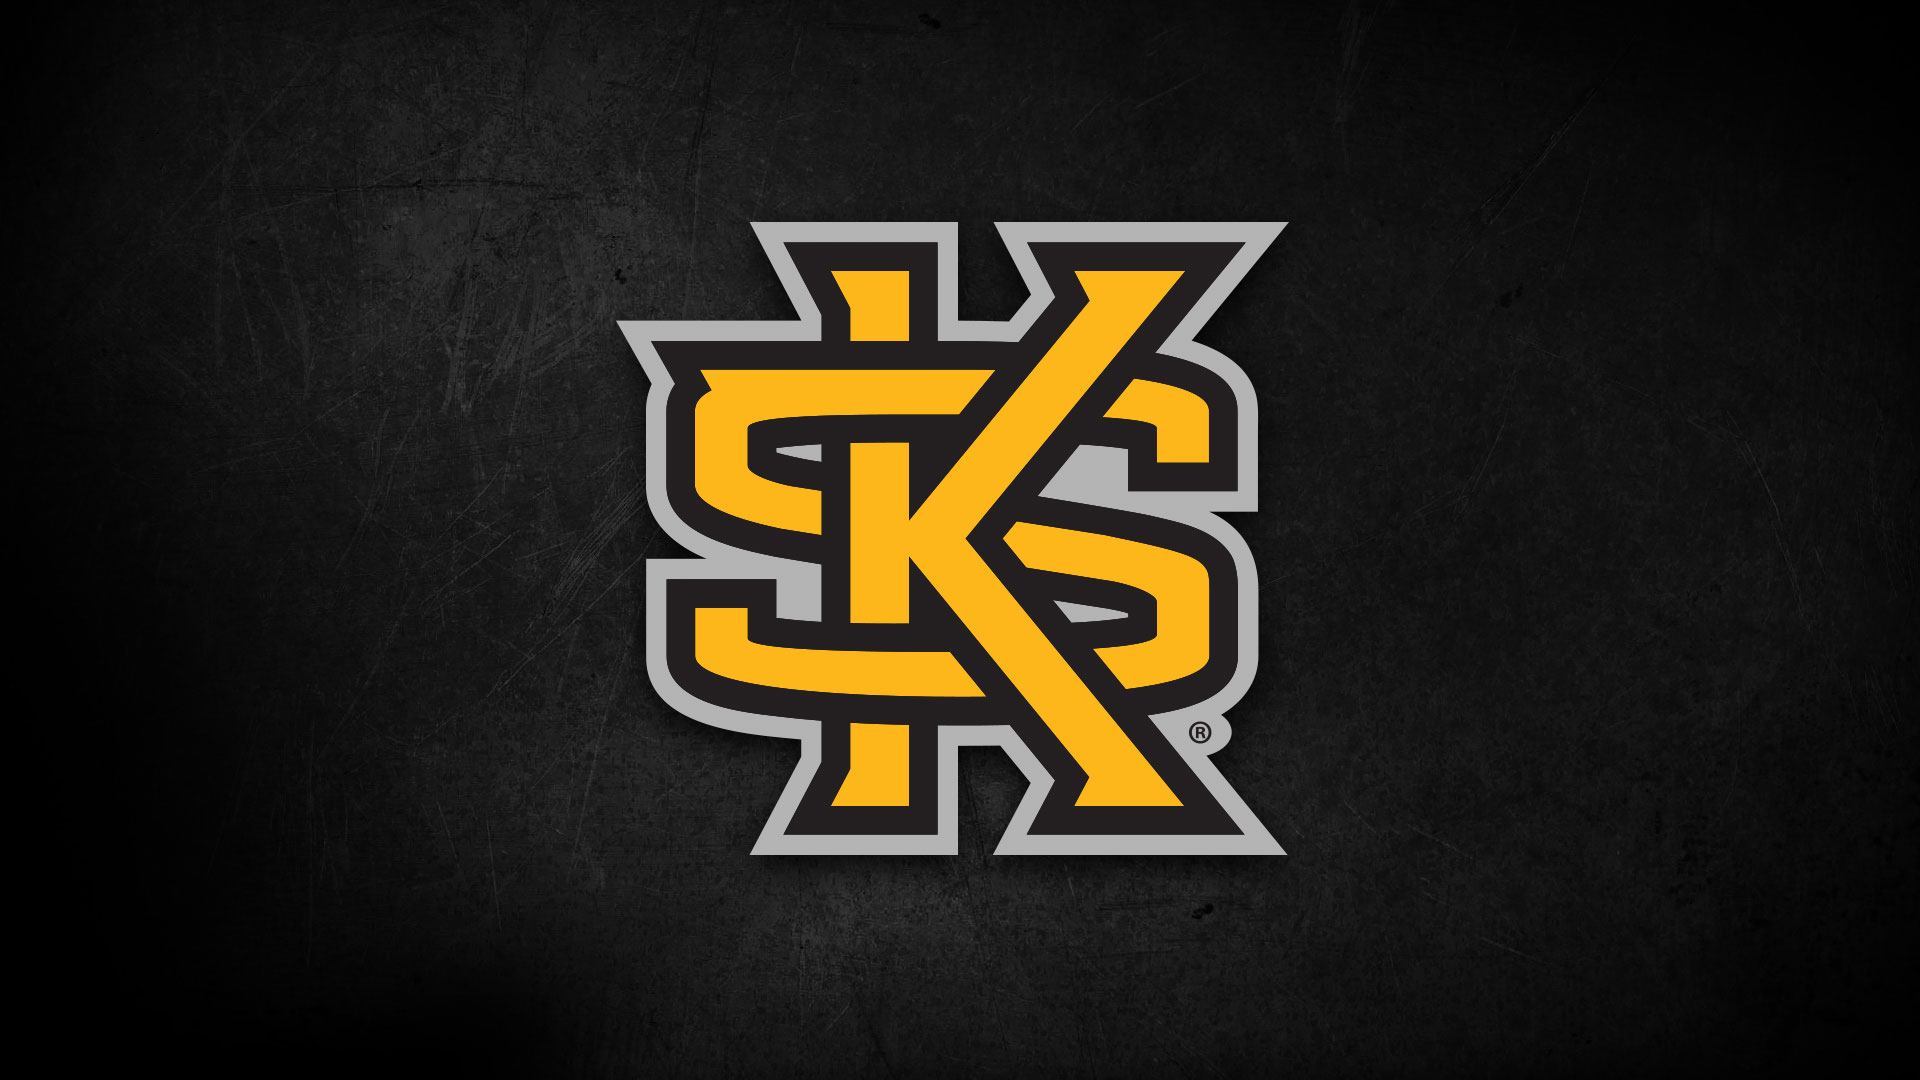 KSU Wallpaper.